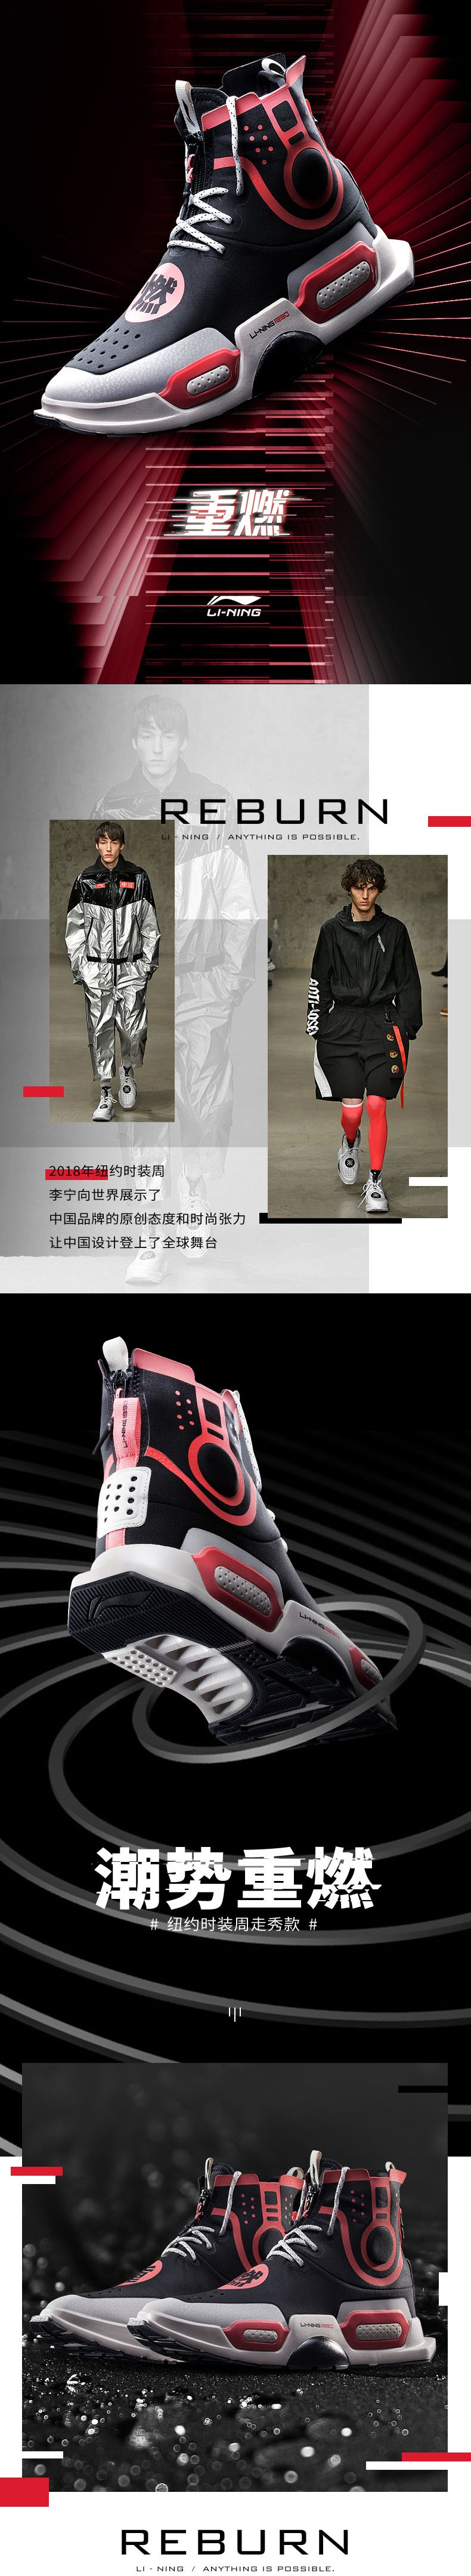 Li-Ning Essence II 2 NYFW 'REBURN' High Top Basketball Culture Shoes - Black/Red